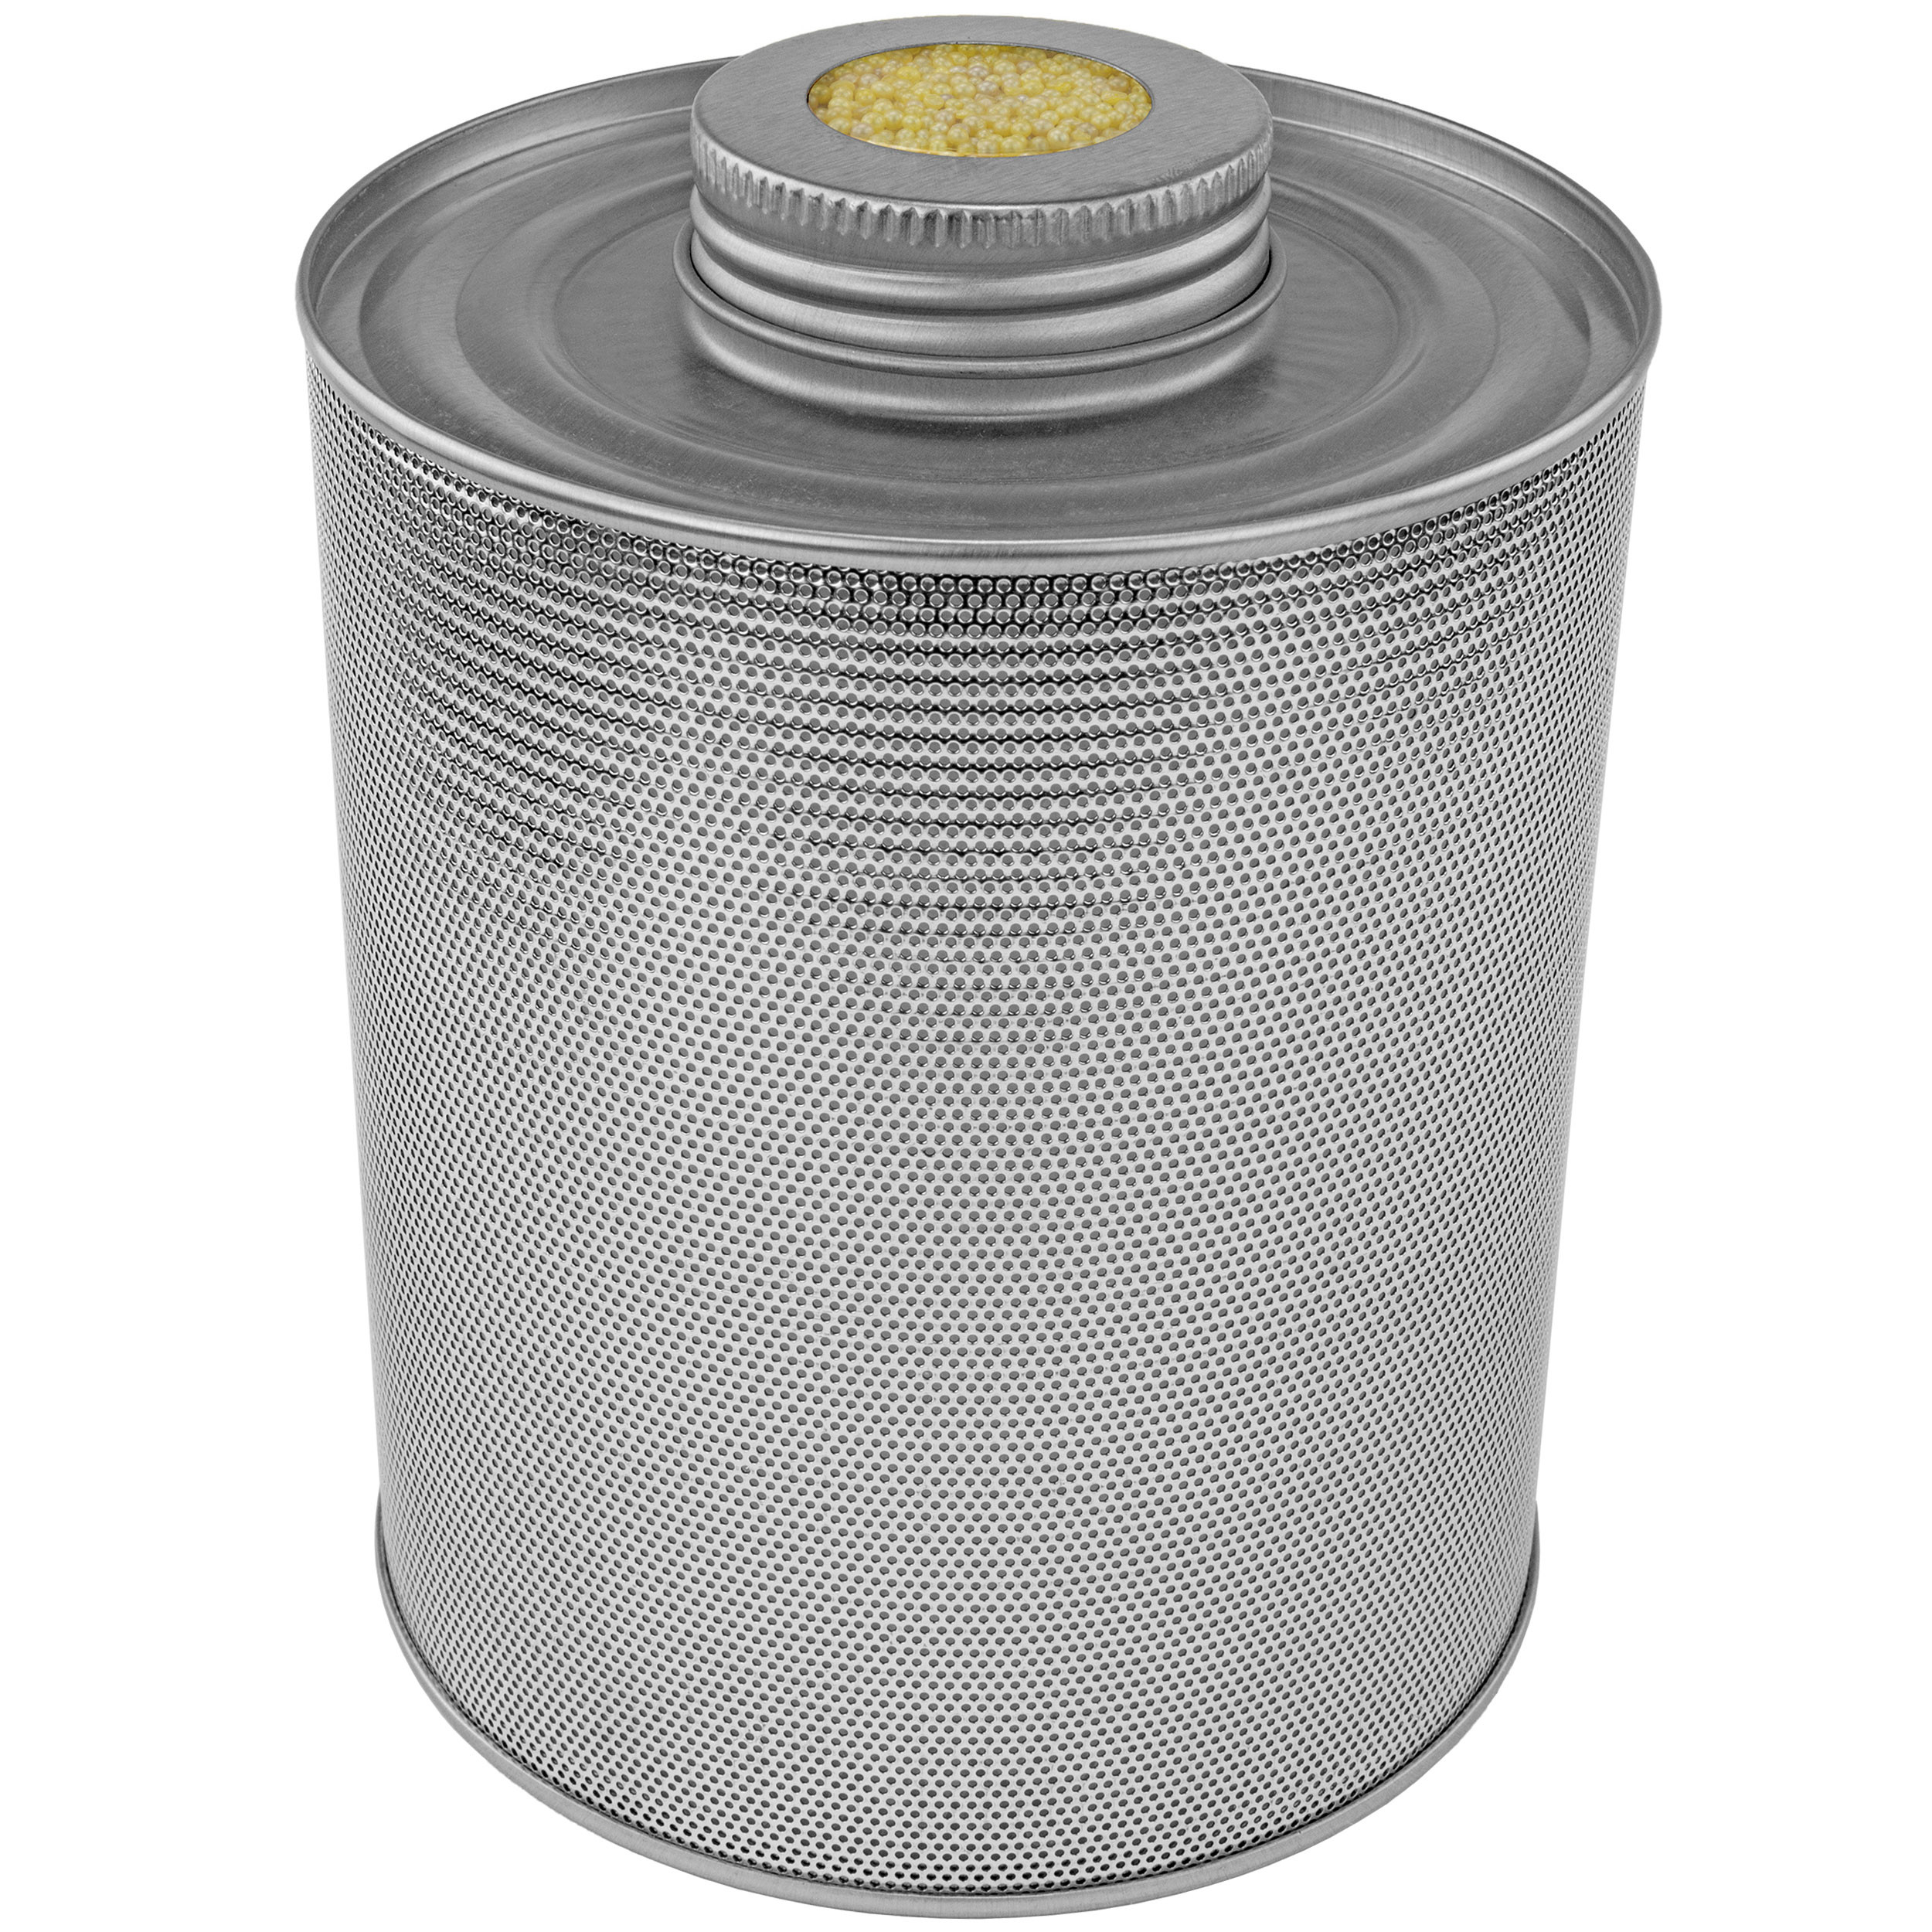 Aroma Dri 750gm Lemonade Scented Silica Gel Steel Canister